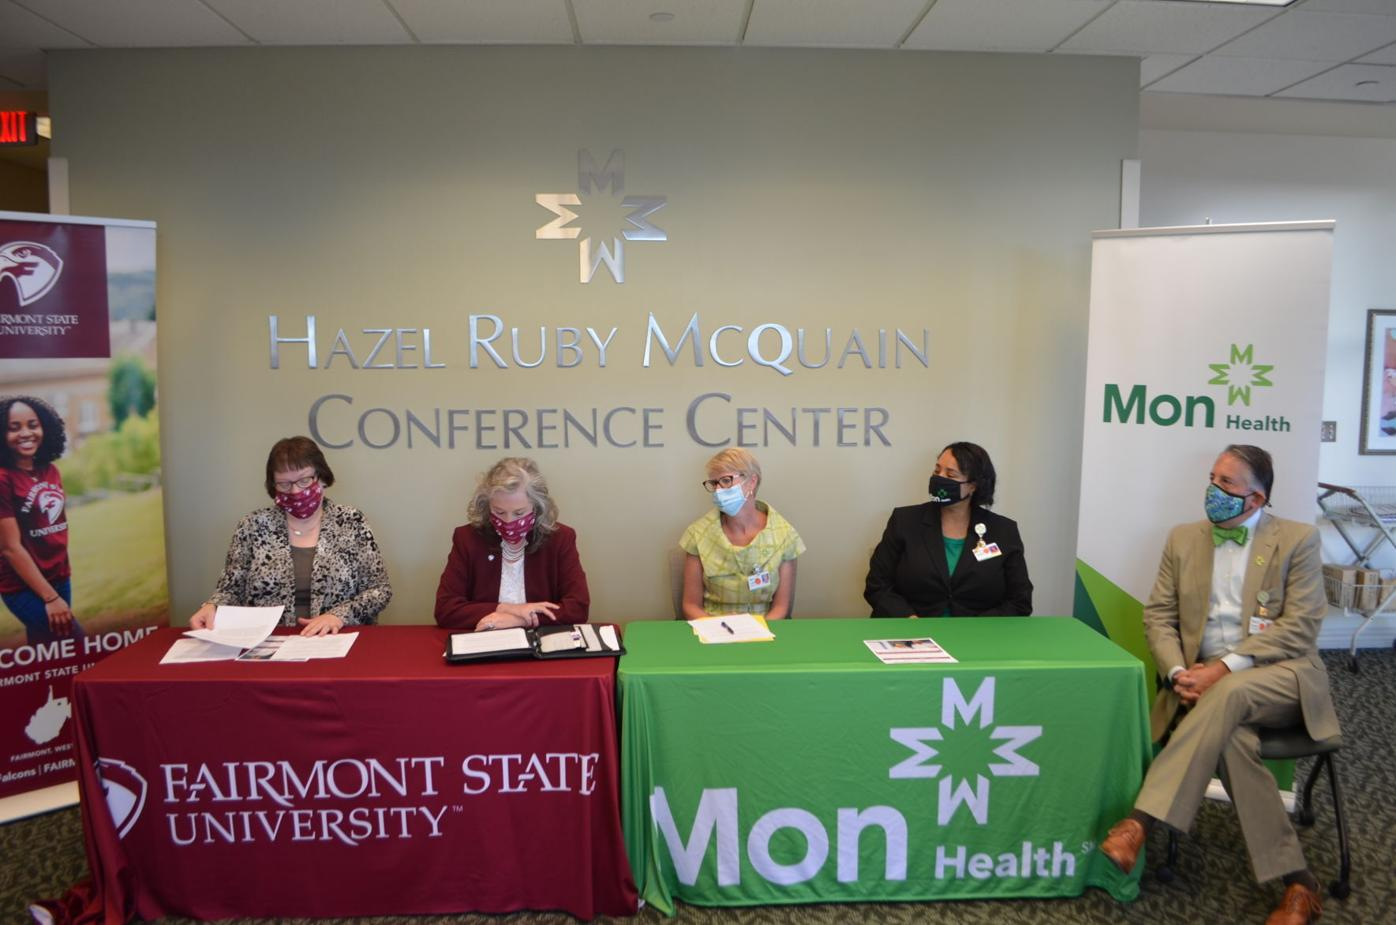 Fairmont State and Mon Health